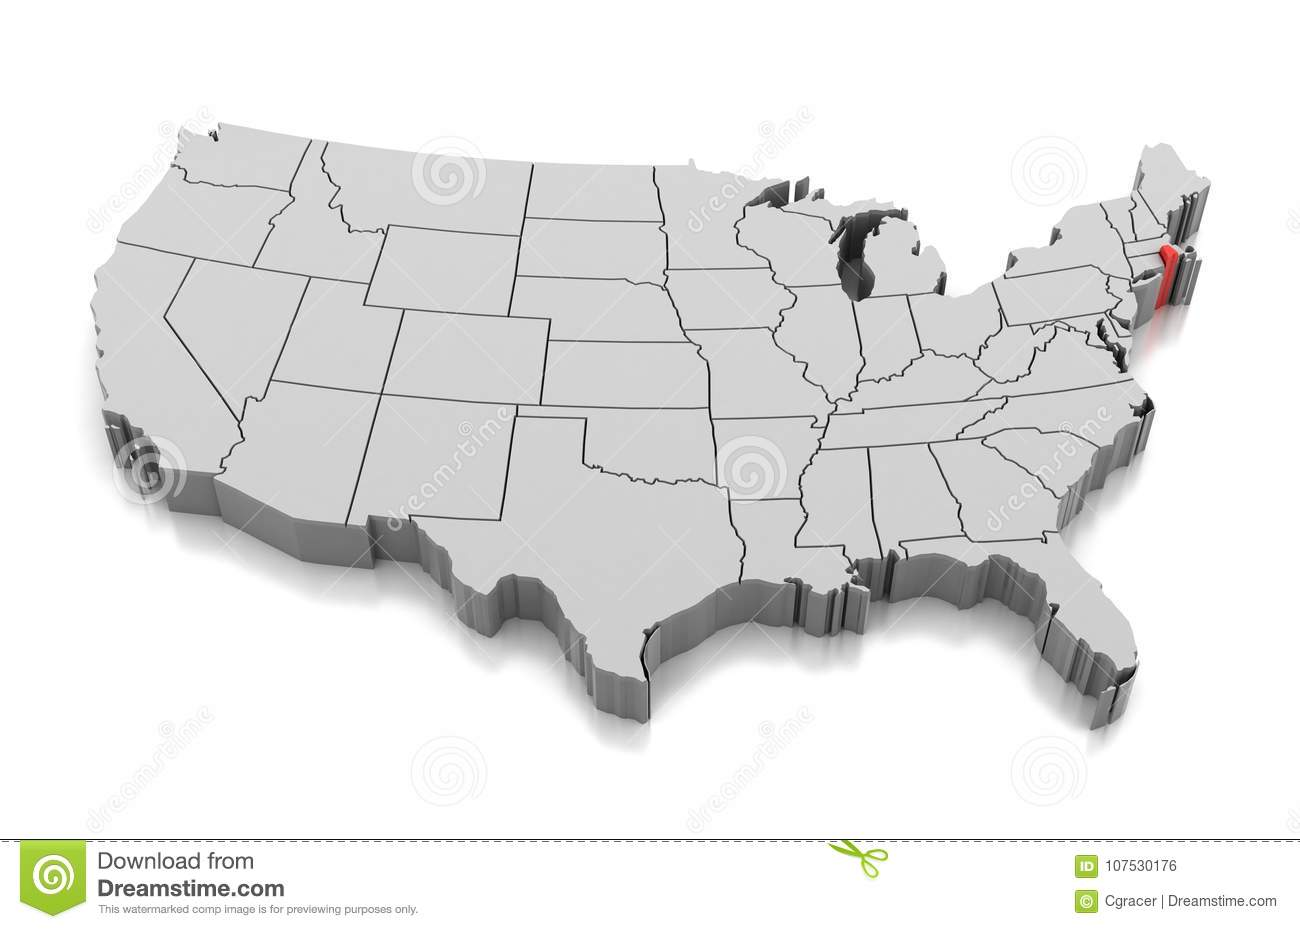 Rhode island was the 13th state in the usa; Map Of Rhode Island State Usa Stock Illustration Illustration Of American Country 107530176